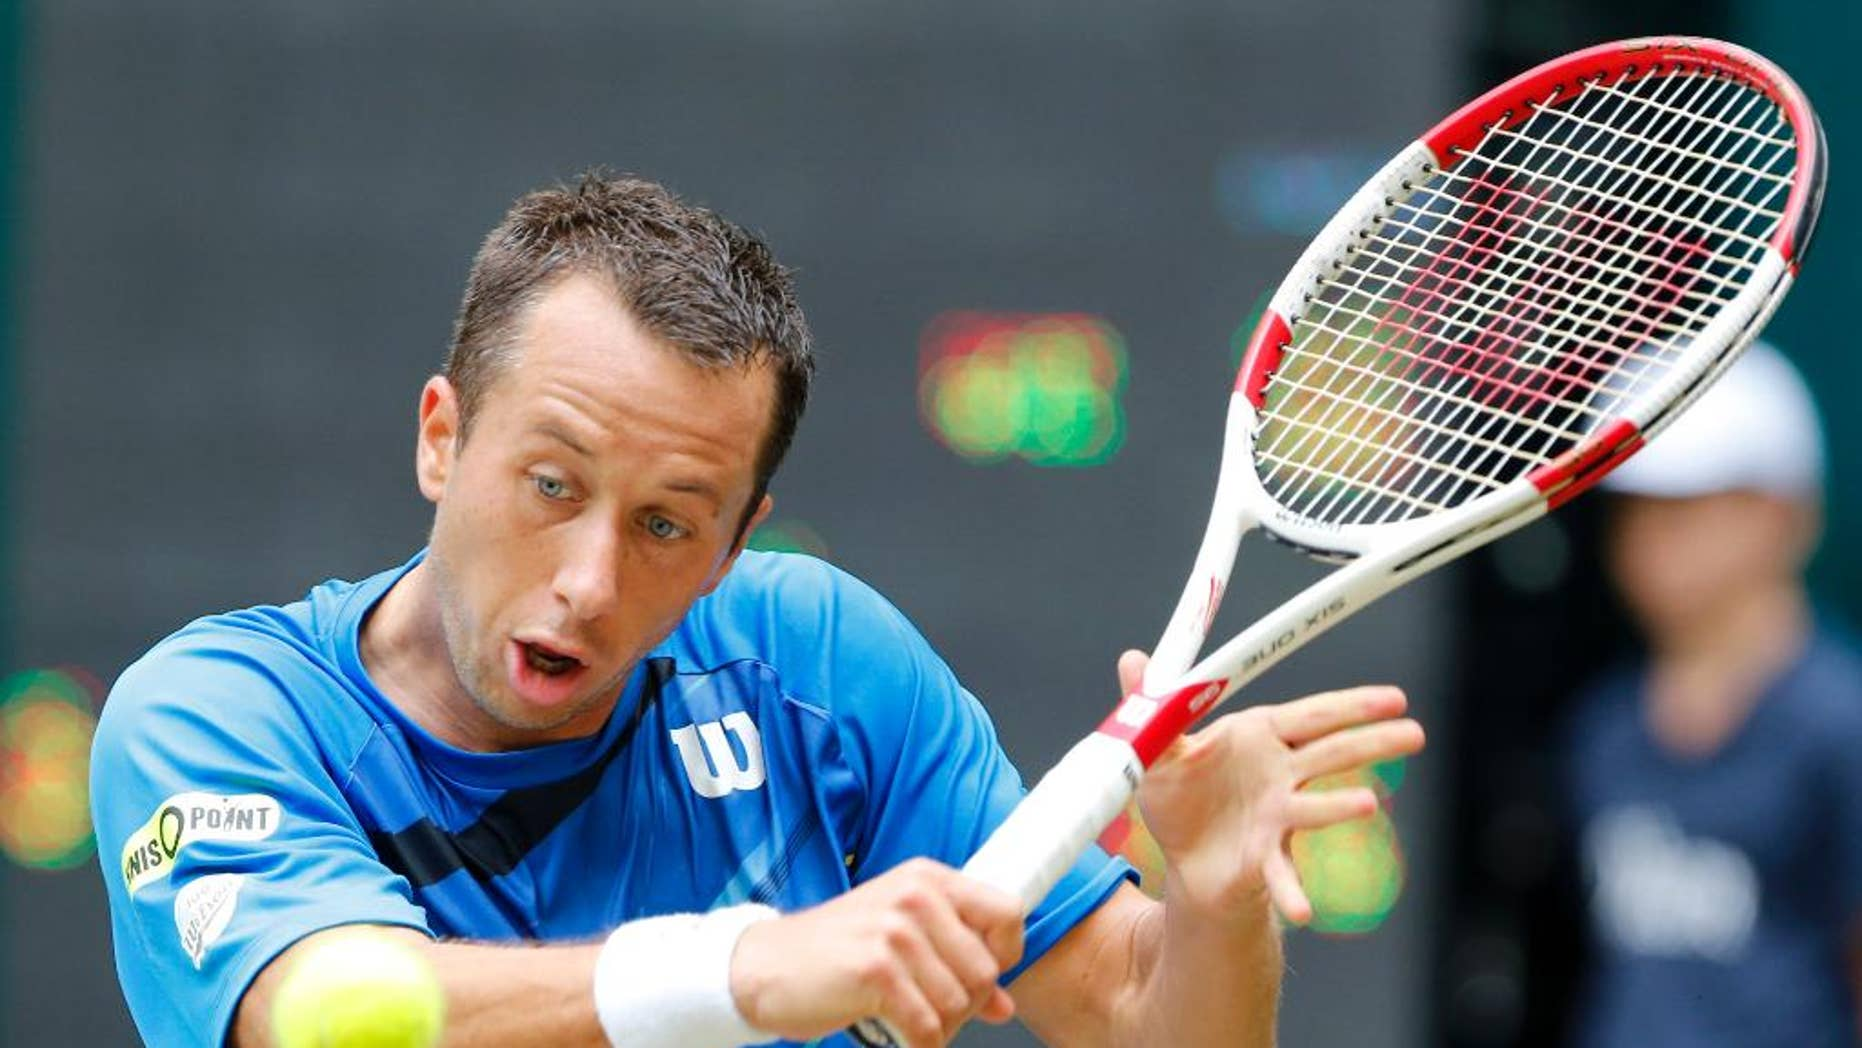 Germany's Philipp Kohlschreiber hits a backhand against Colombia's Alejandro Falla during the semifinal match of the the Gerry Weber Open tennis tournament in Halle, Germany, Saturday, June 14, 2014. Falla won the match with 5-7, 7-6, 6-4. (AP Photo/Michael Probst)